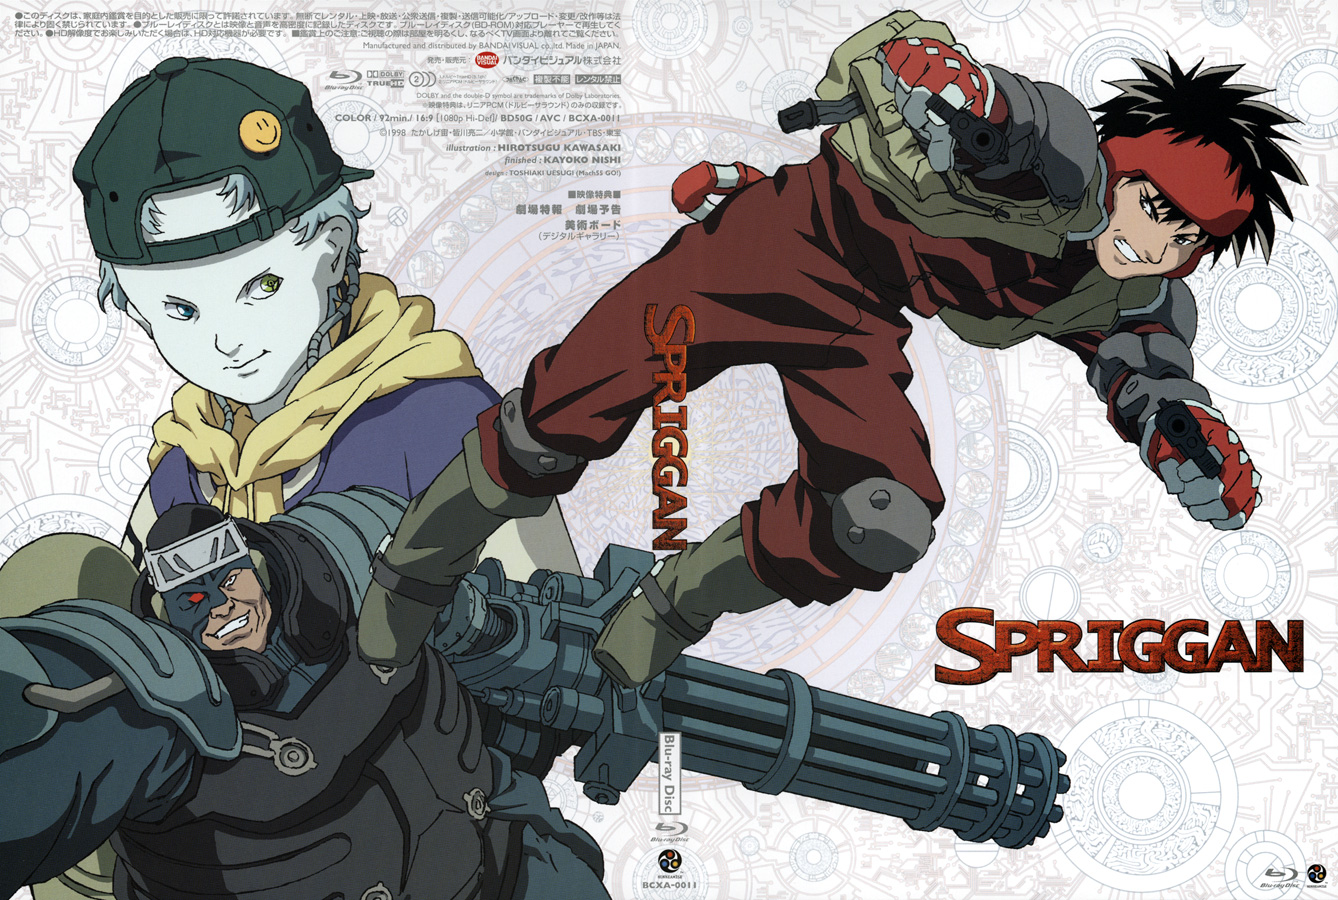 ANIME] Spriggan (Mediafire) BluRay 720p